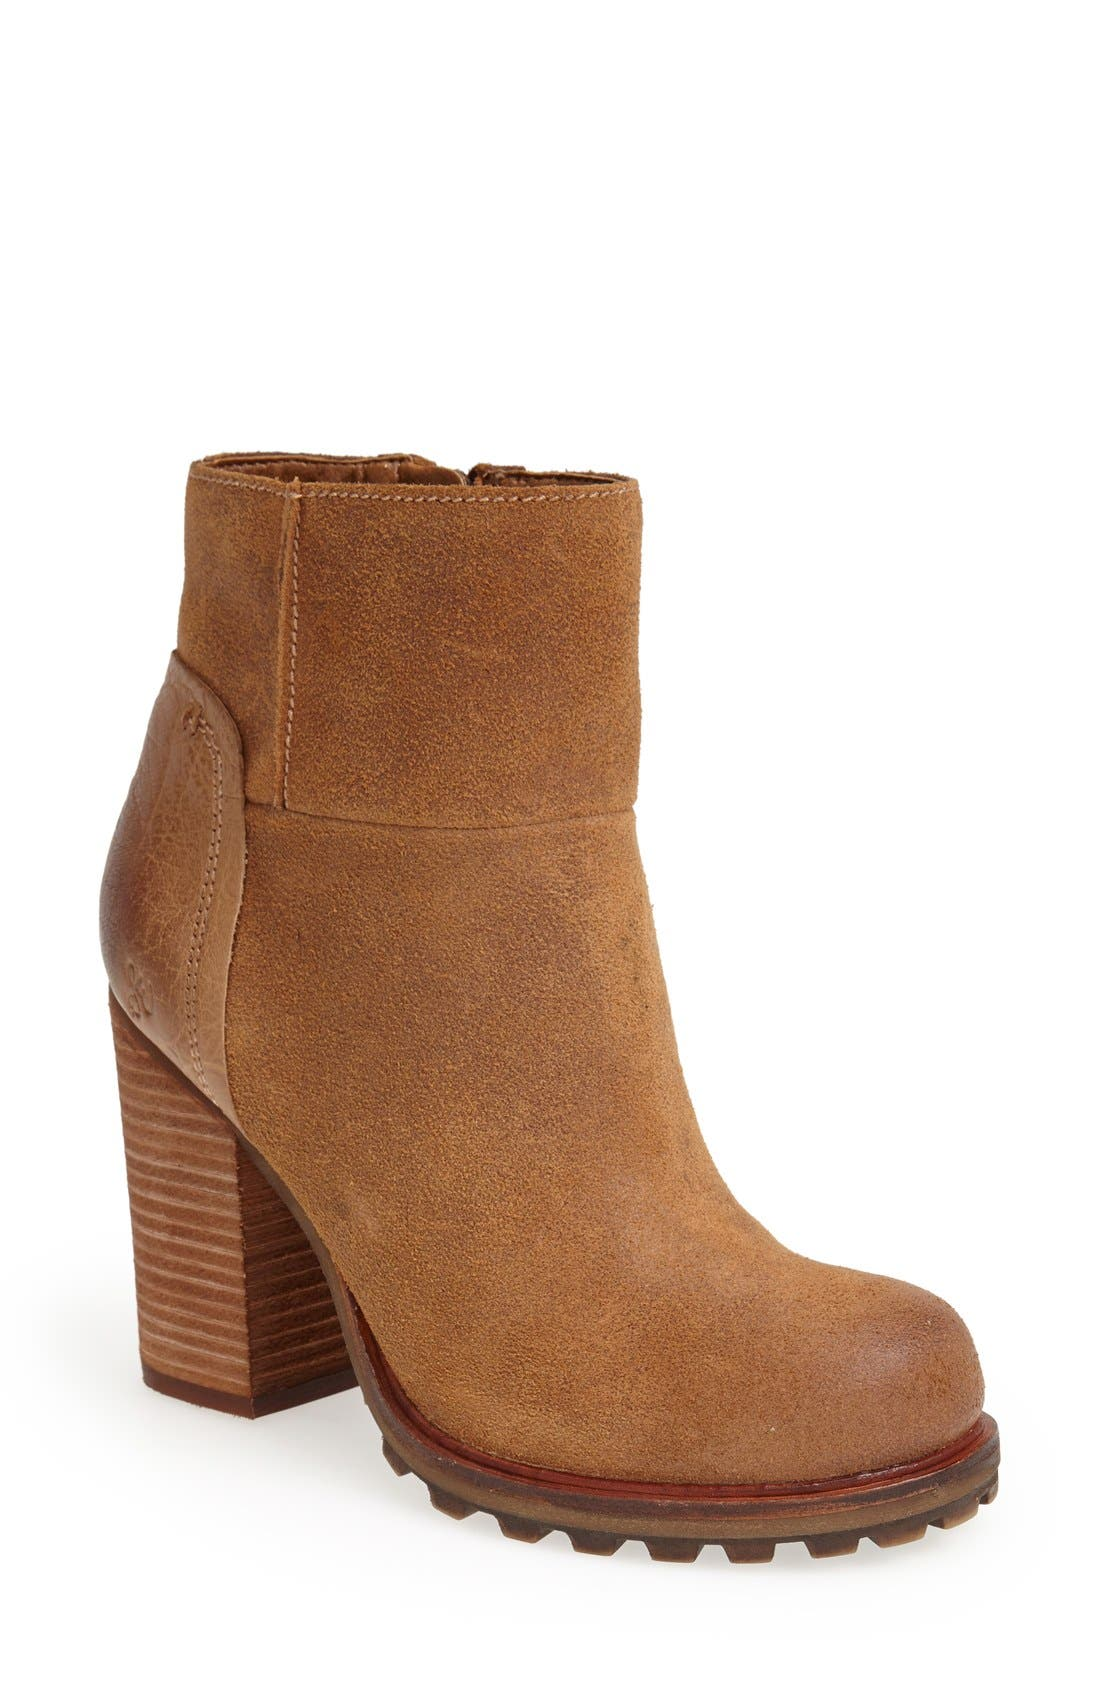 Alternate Image 1 Selected - Sam Edelman 'Franklin' Boot (Women)